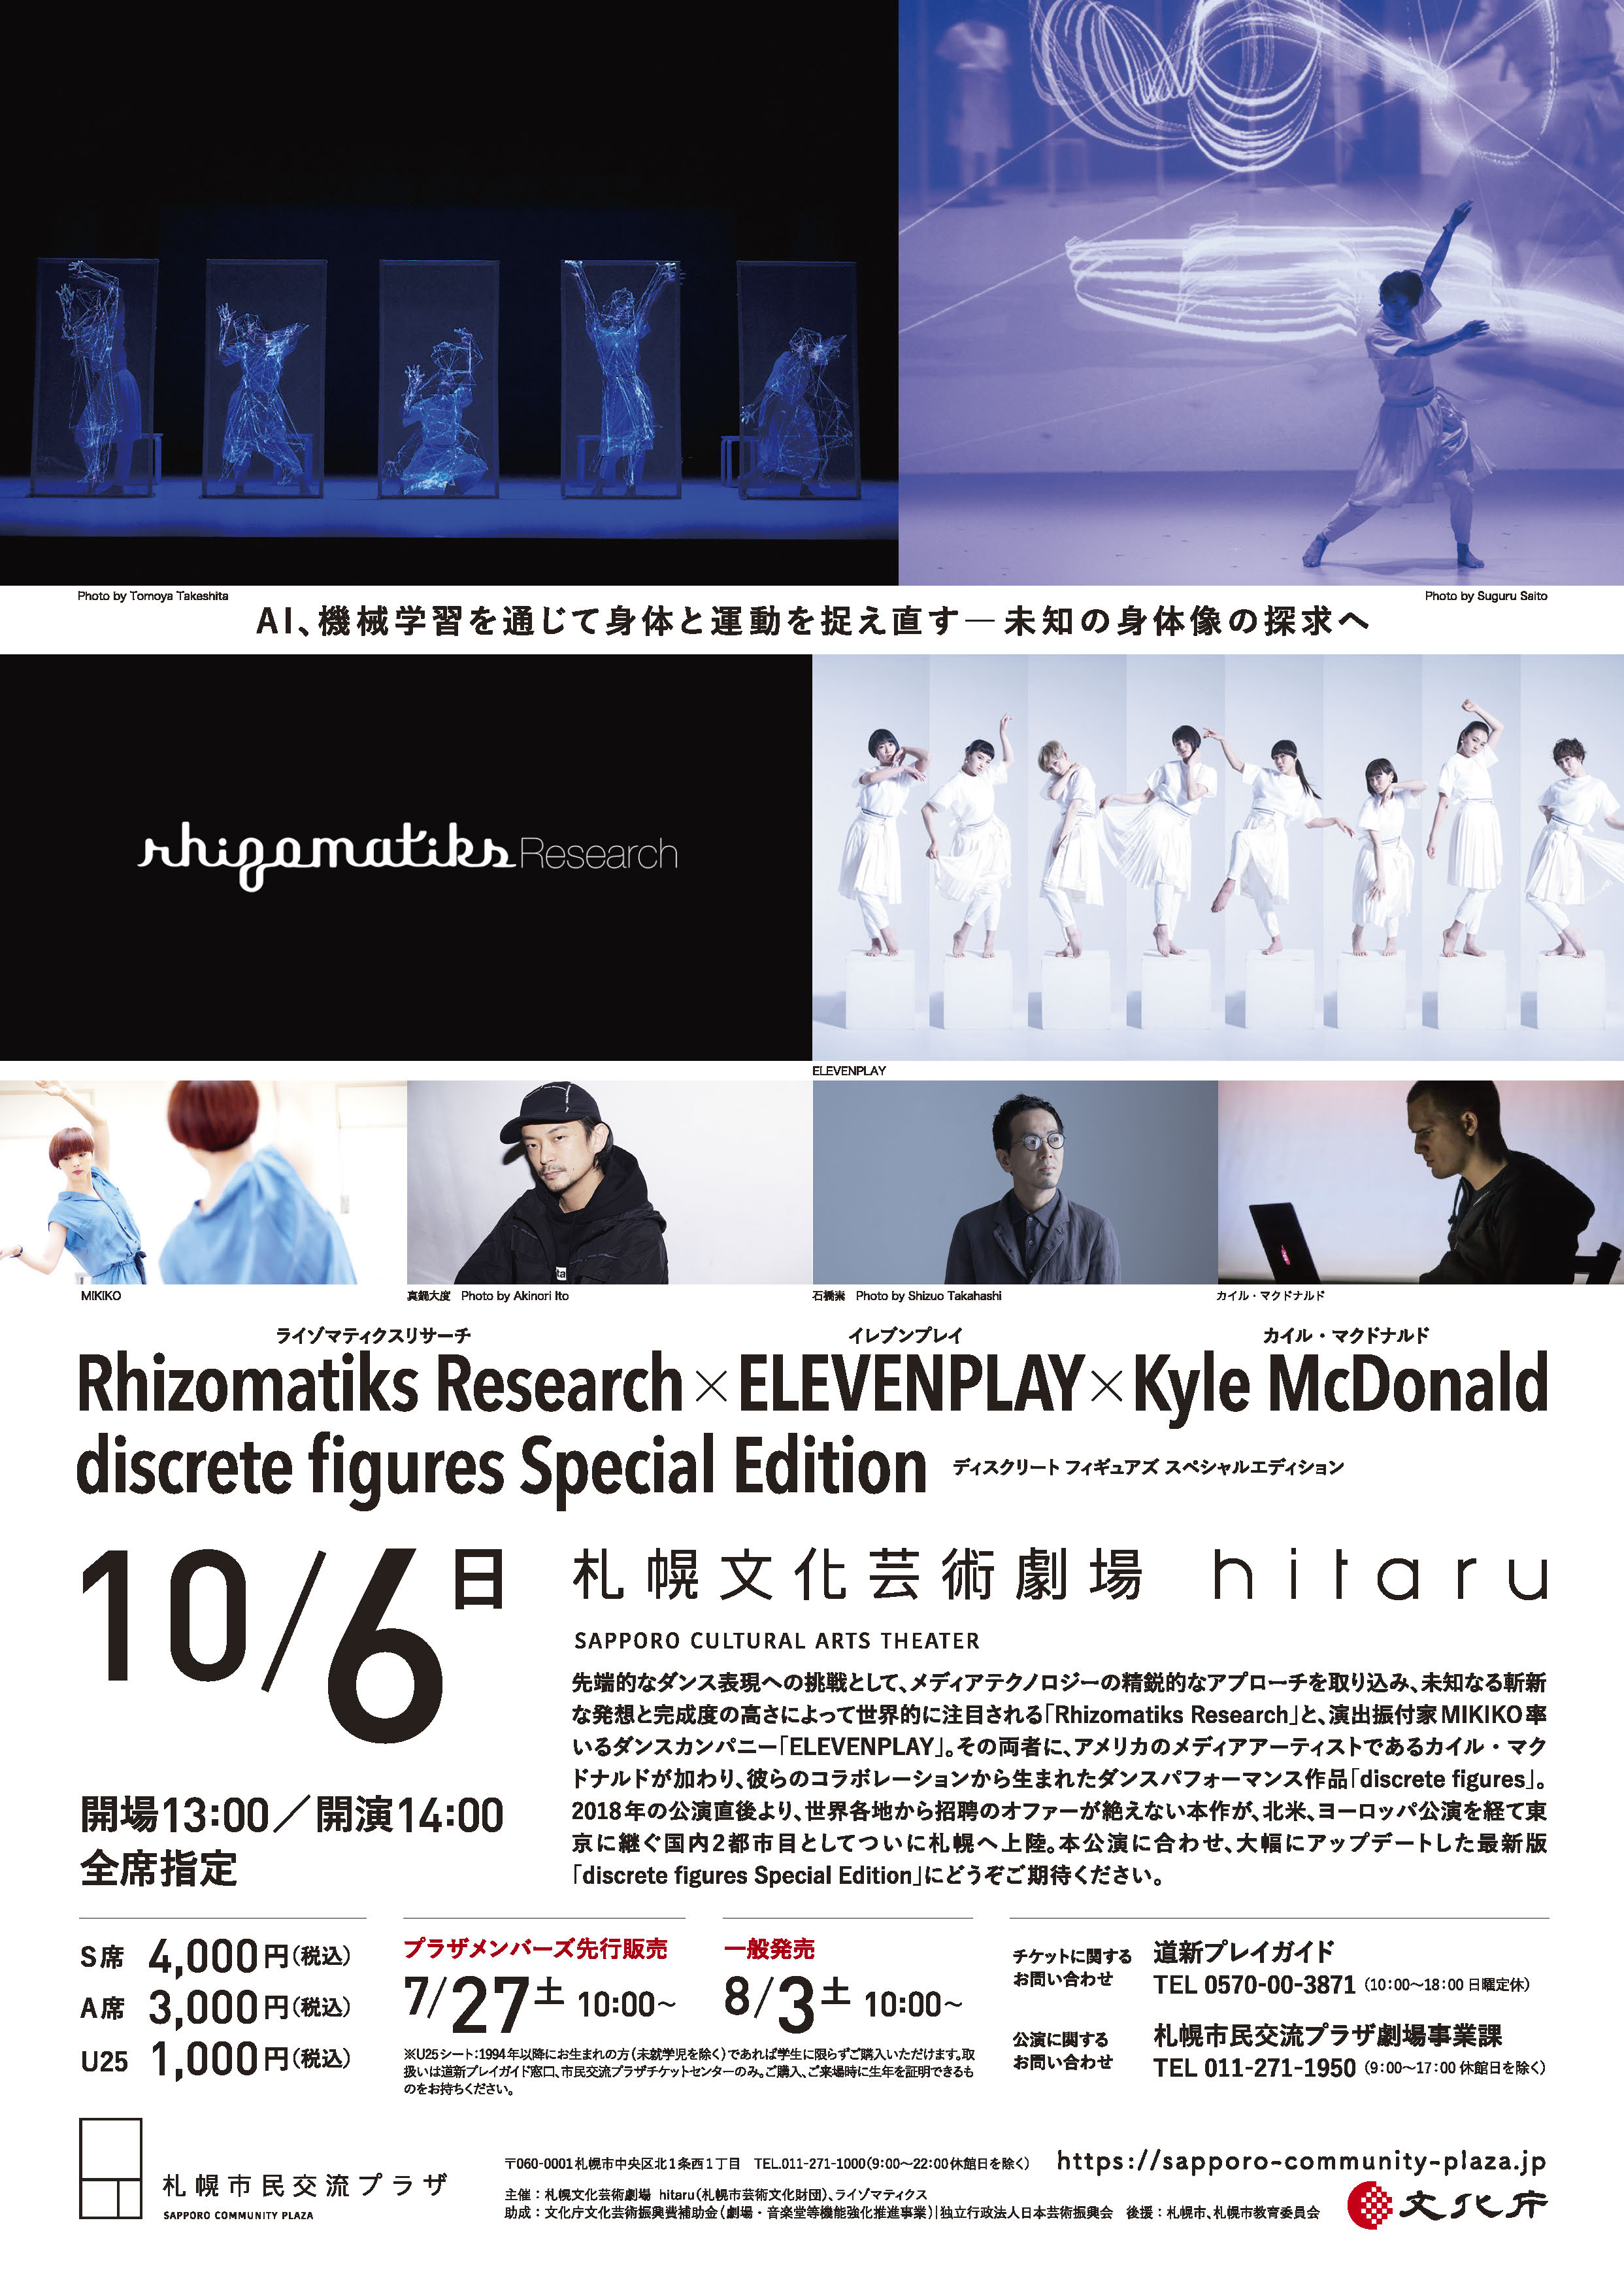 PLAZA FESTIVAL 2019Rhizomatiks Research × ELEVENPLAY × Kyle McDonald「discrete figures Special Edition」当日券についてイメージ